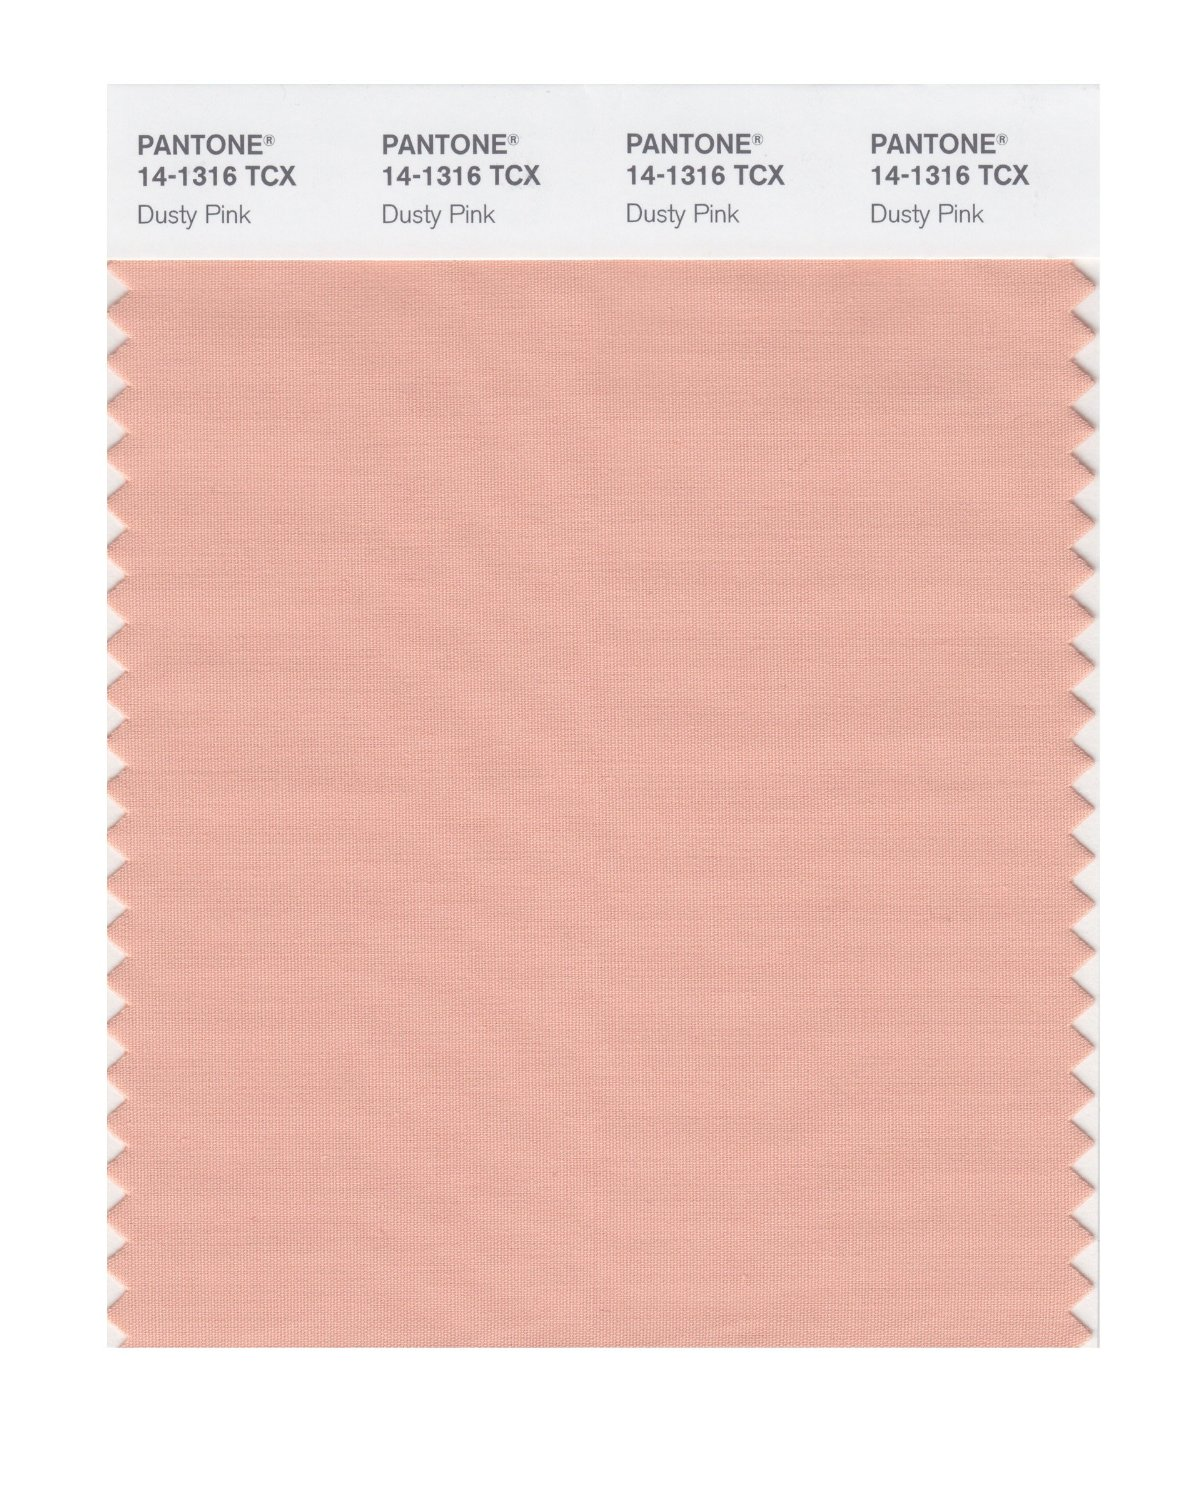 Pantone Smart Swatch 14-1316 Dusty Pink